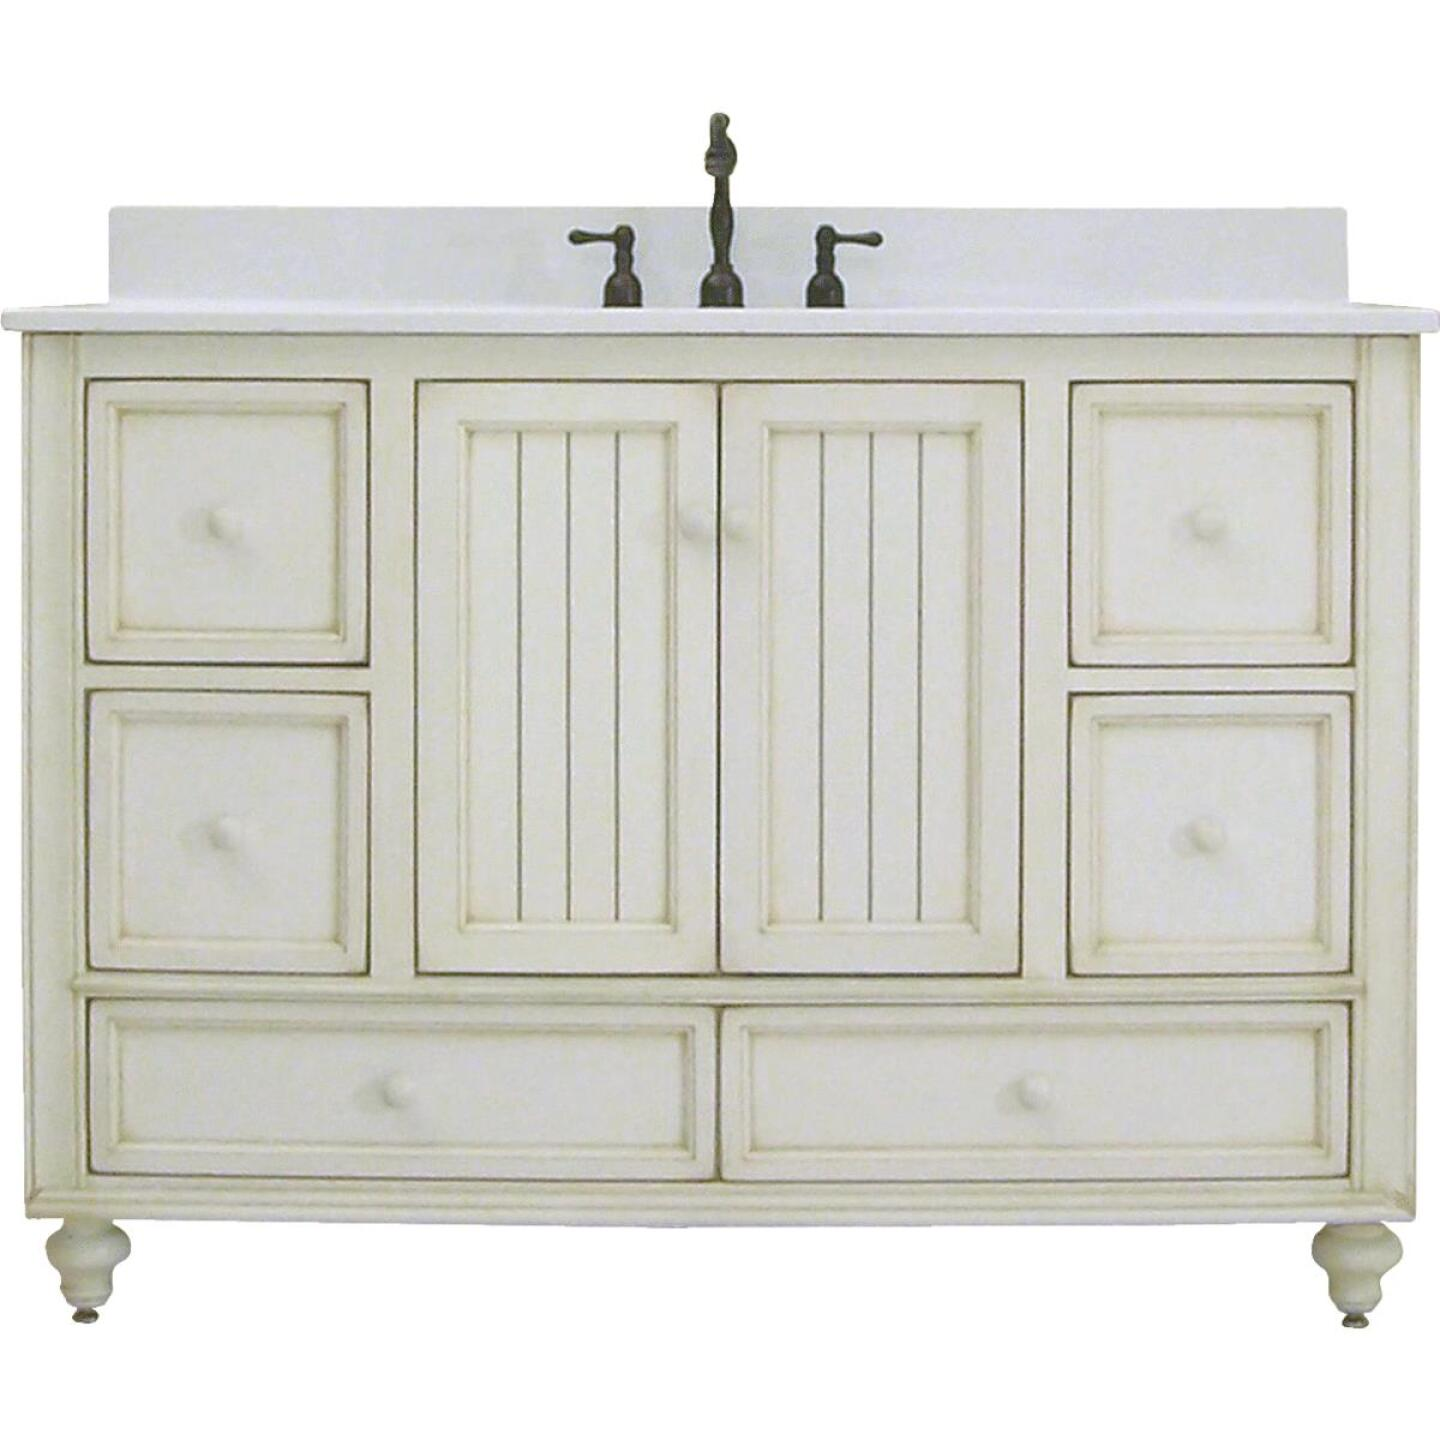 Sunny Wood Bristol Beach White 48 In. W x 34 In. H x 21 In. D Vanity Base, 2 Door/6 Drawer Image 1